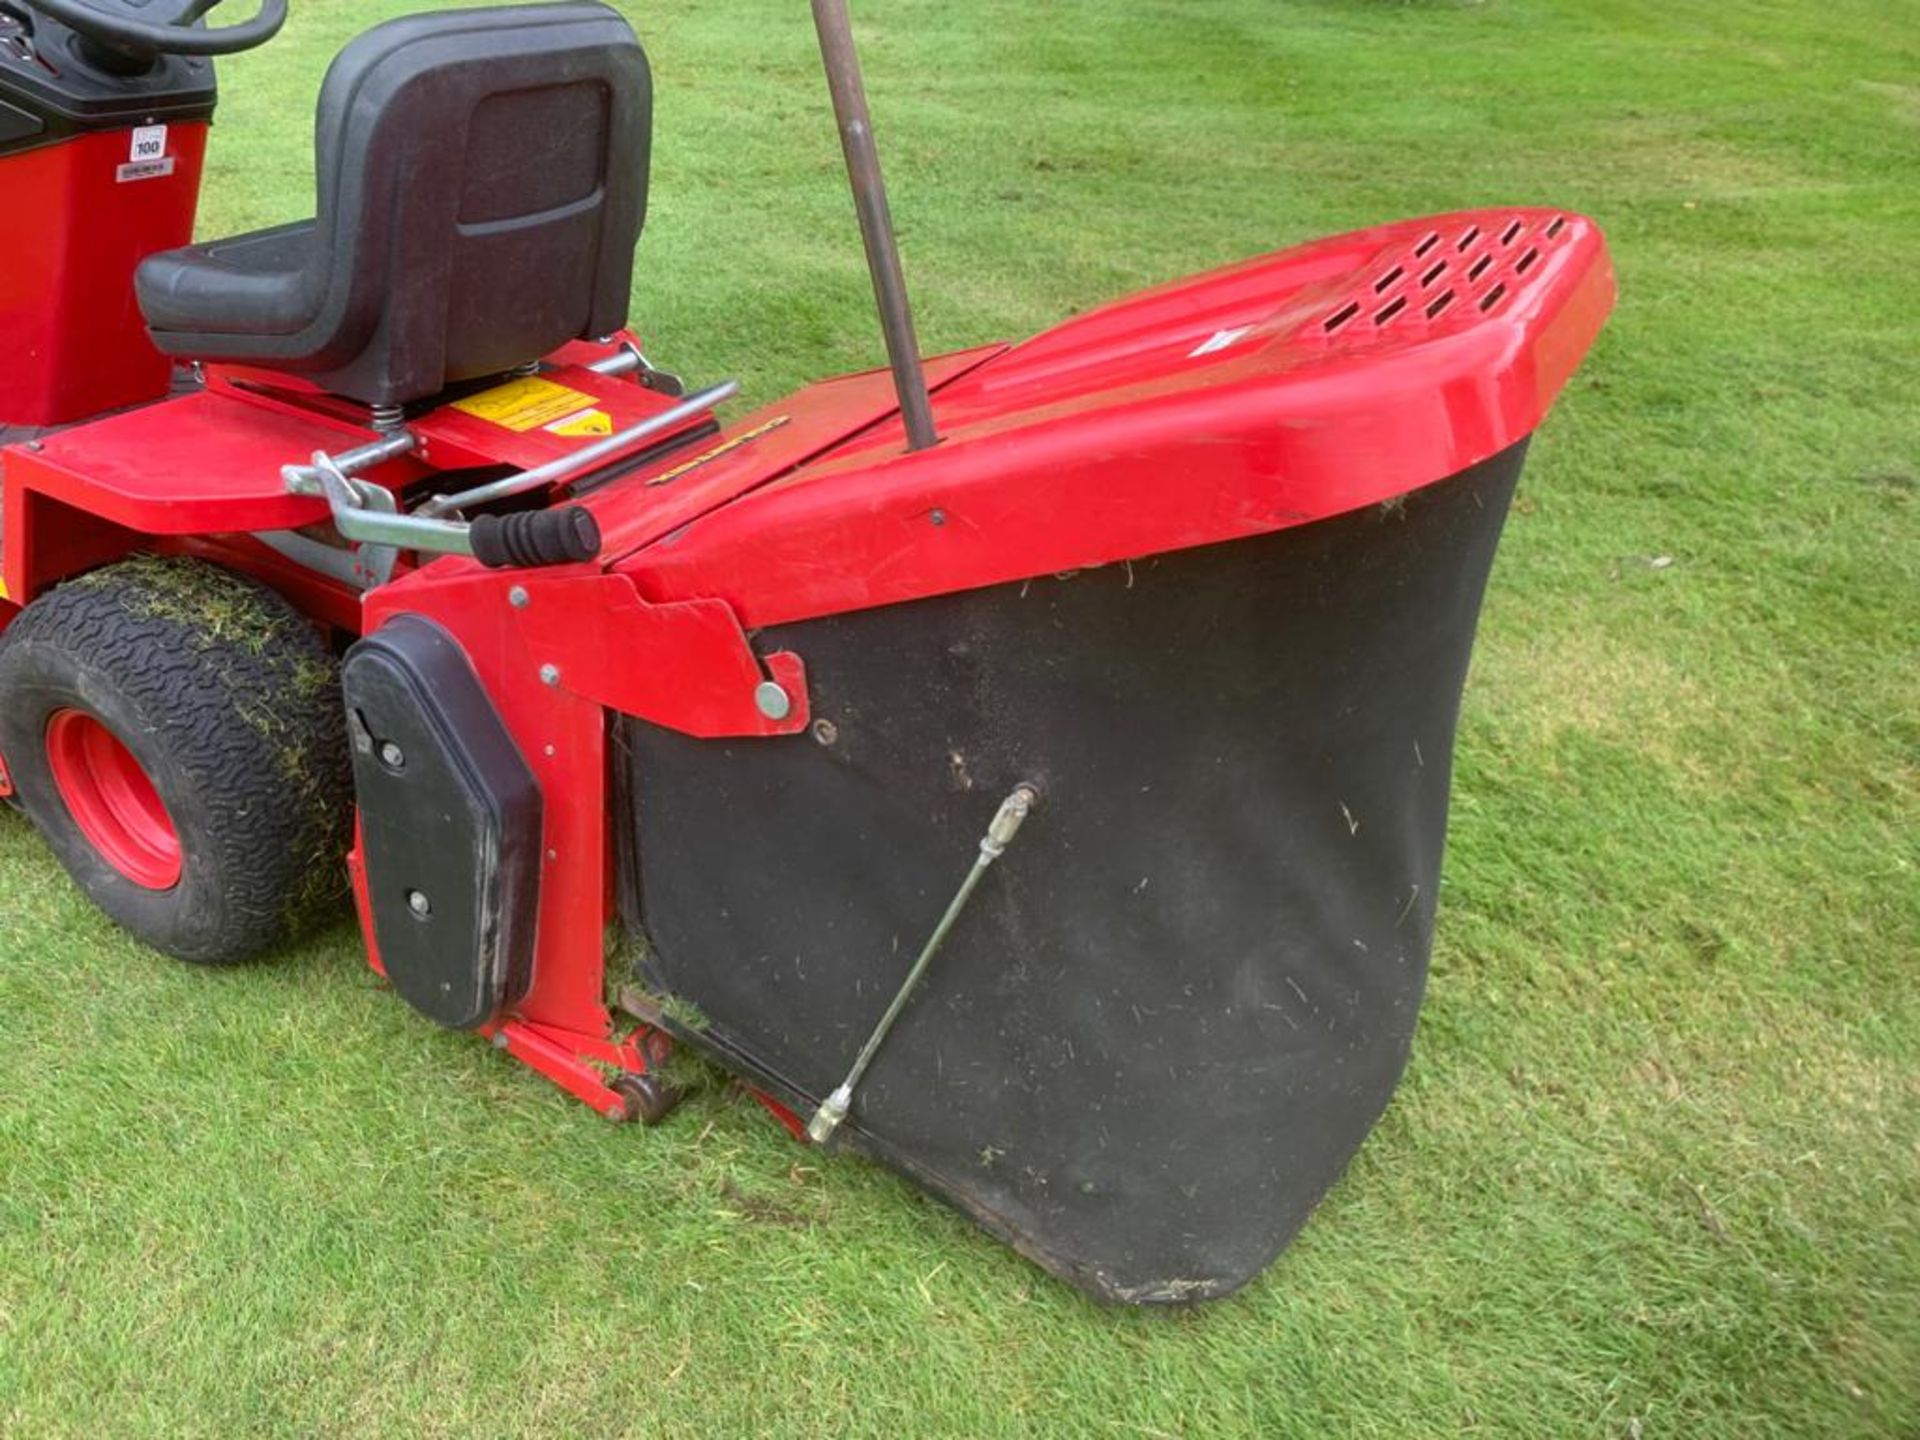 COUNTAX C400H HYDROSTATIC PETROL RIDE ON LAWN MOWER WITH SWEEPER *PLUS VAT* - Image 5 of 7